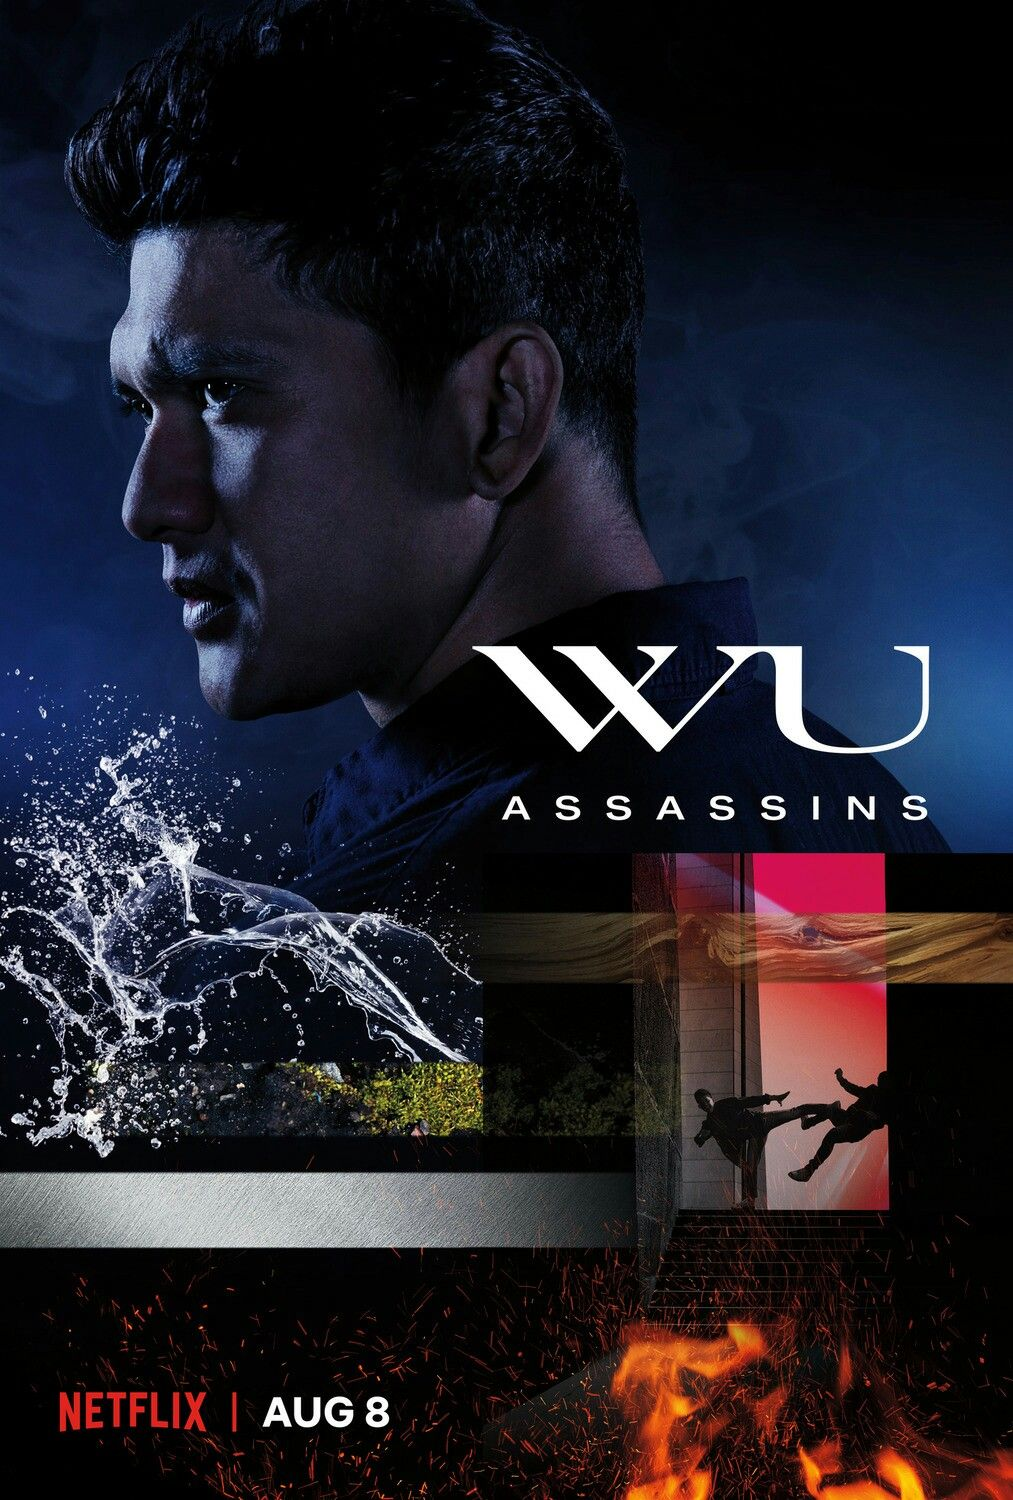 The Poster For The New Netflix Series Wu Assassins Wuassassins